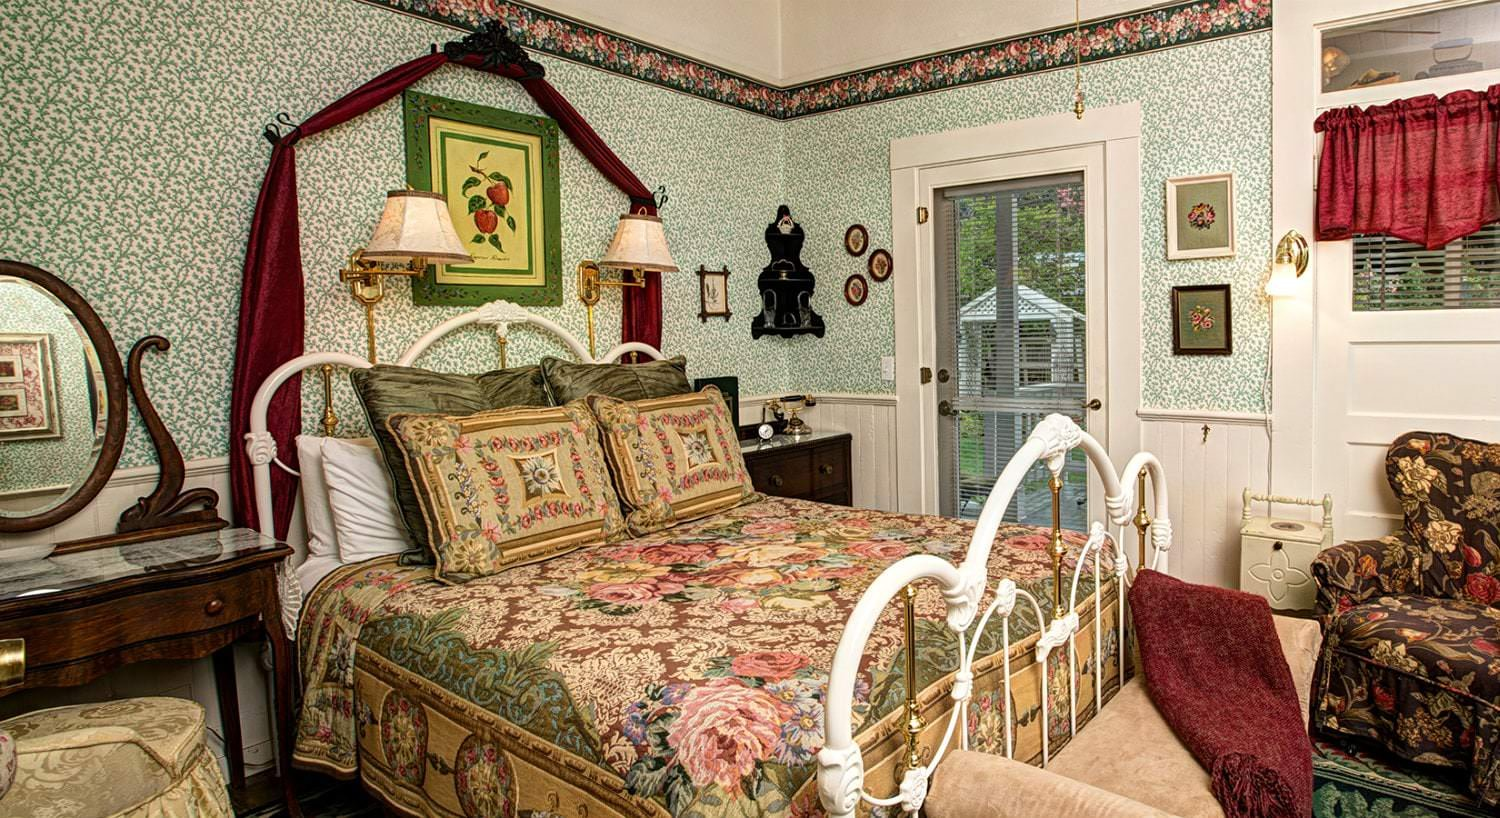 Green and white papered guest room, wood floors, floral covered bed with wood nightstands, floral upholstered chair, and French door